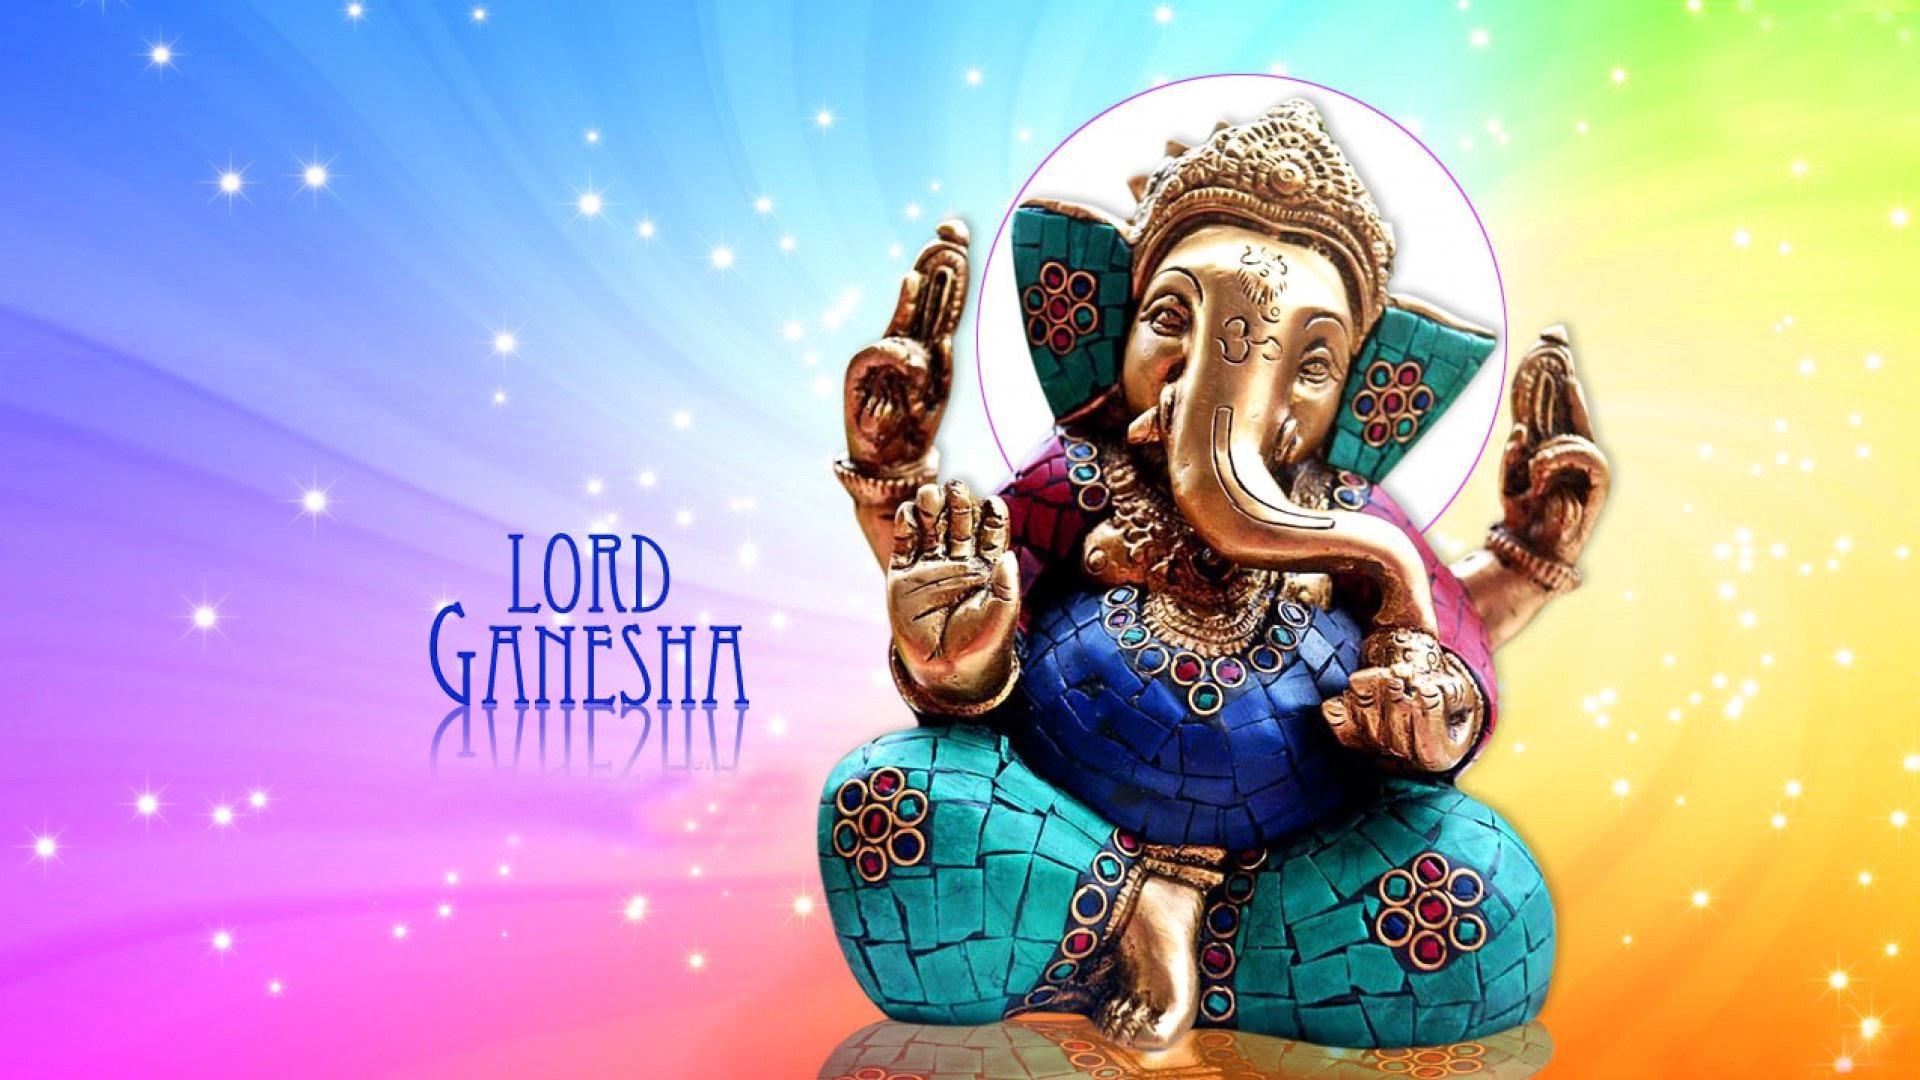 20+ Lord Ganesha Hd Wallpapers 1080P Background